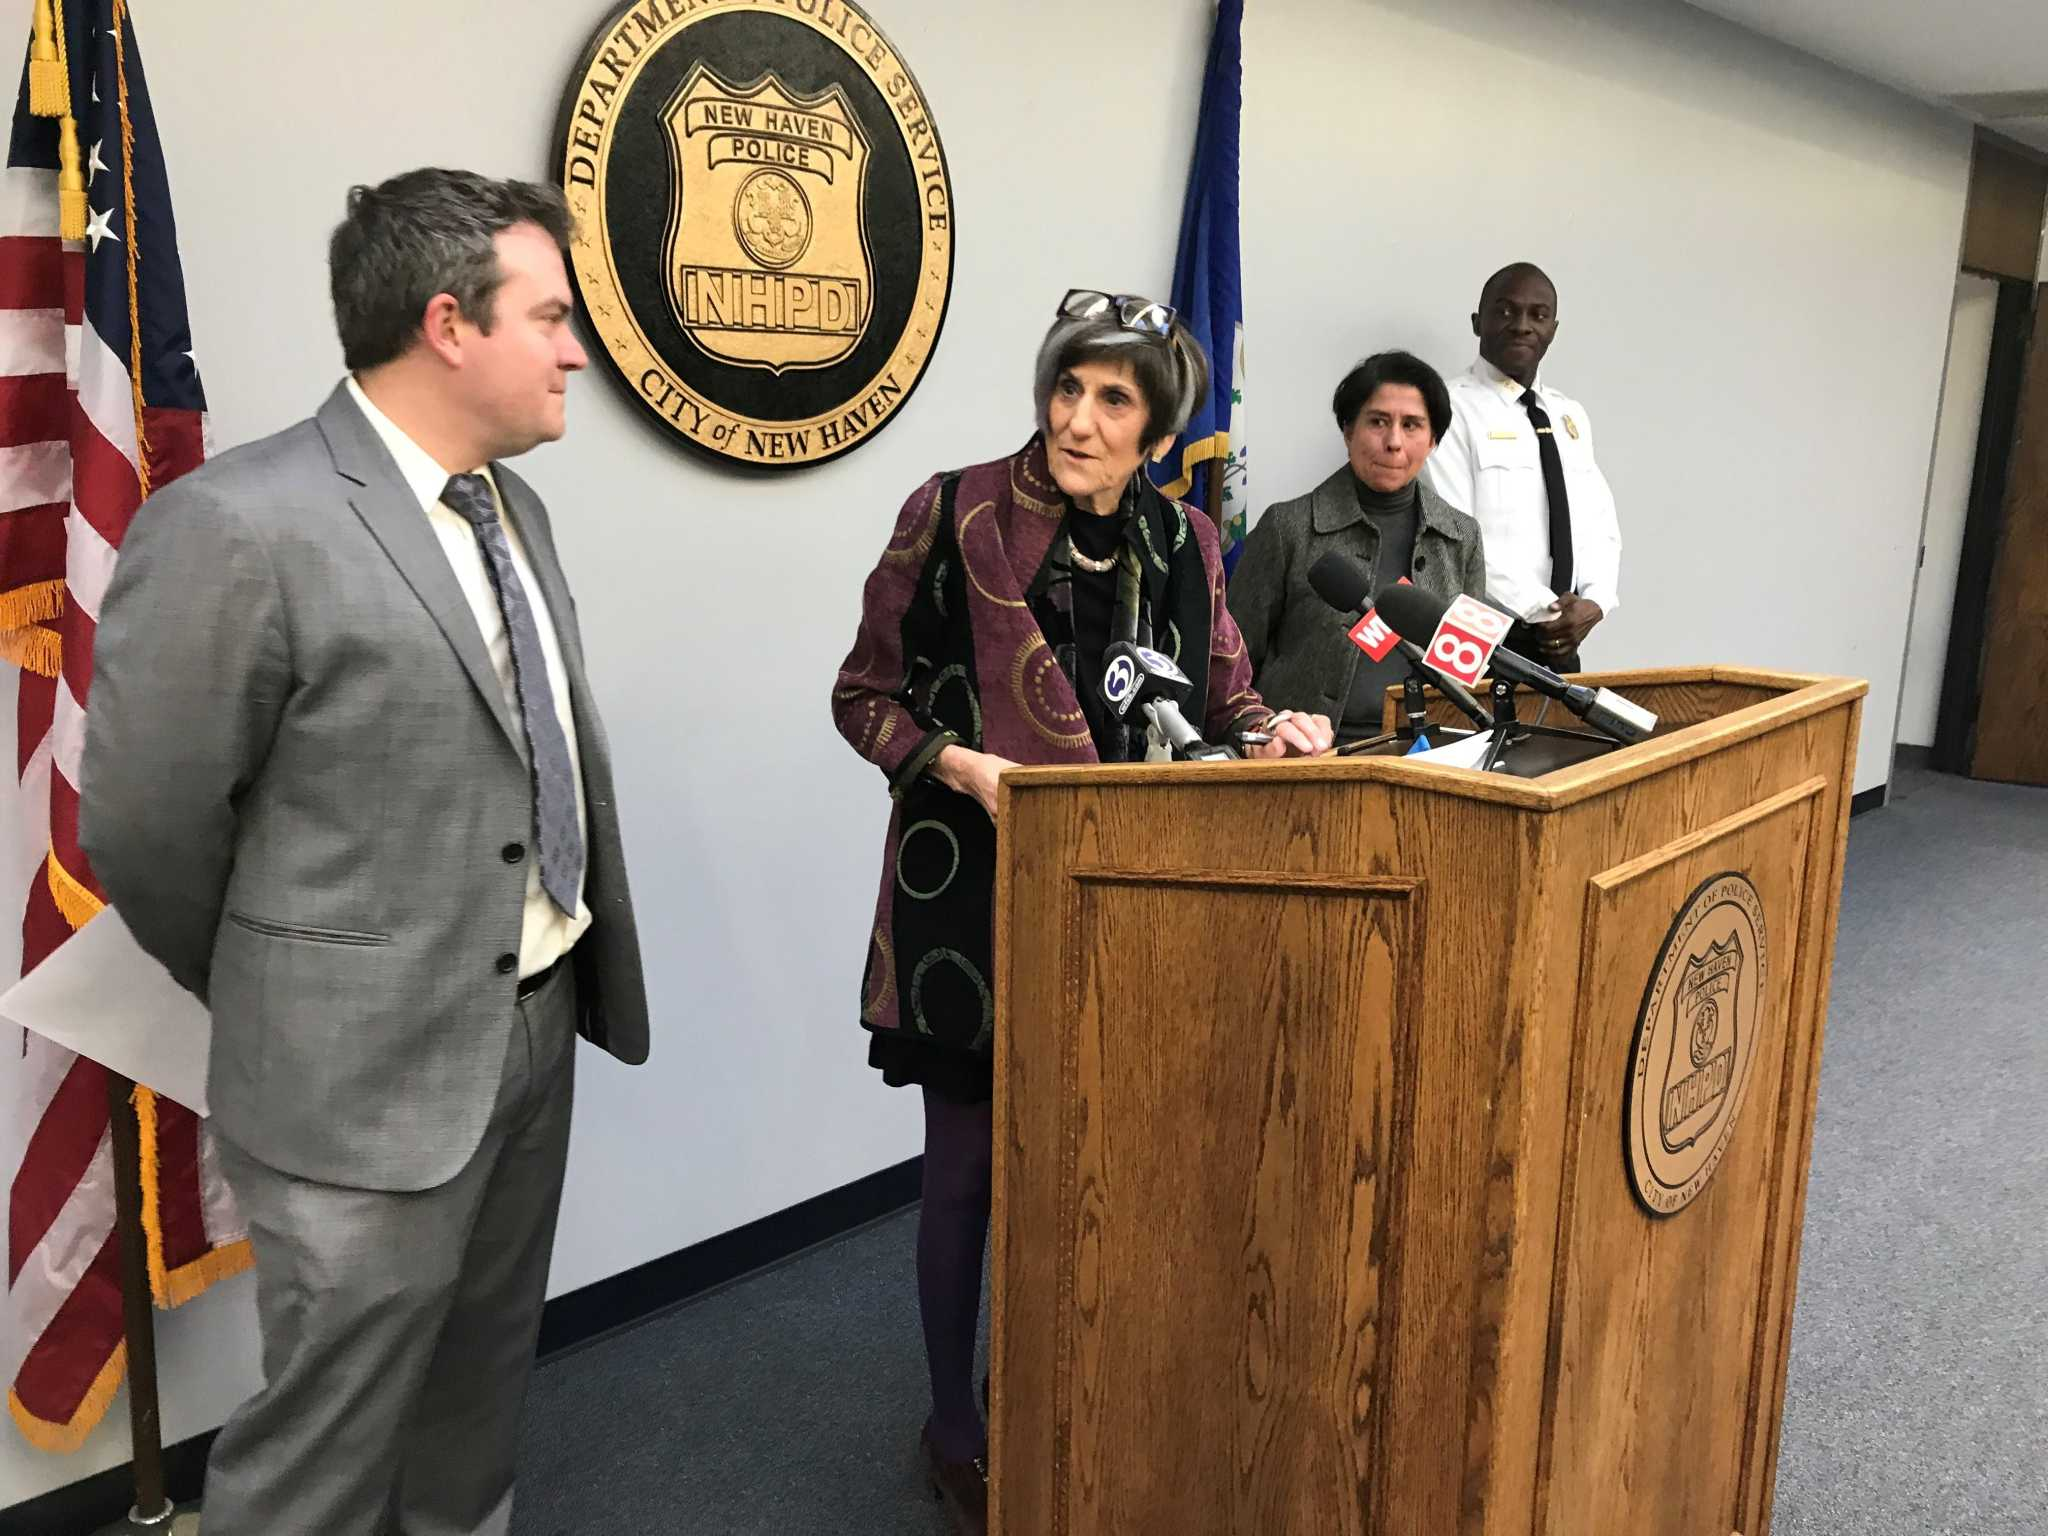 Call made for funding gun violence research - New Haven Register